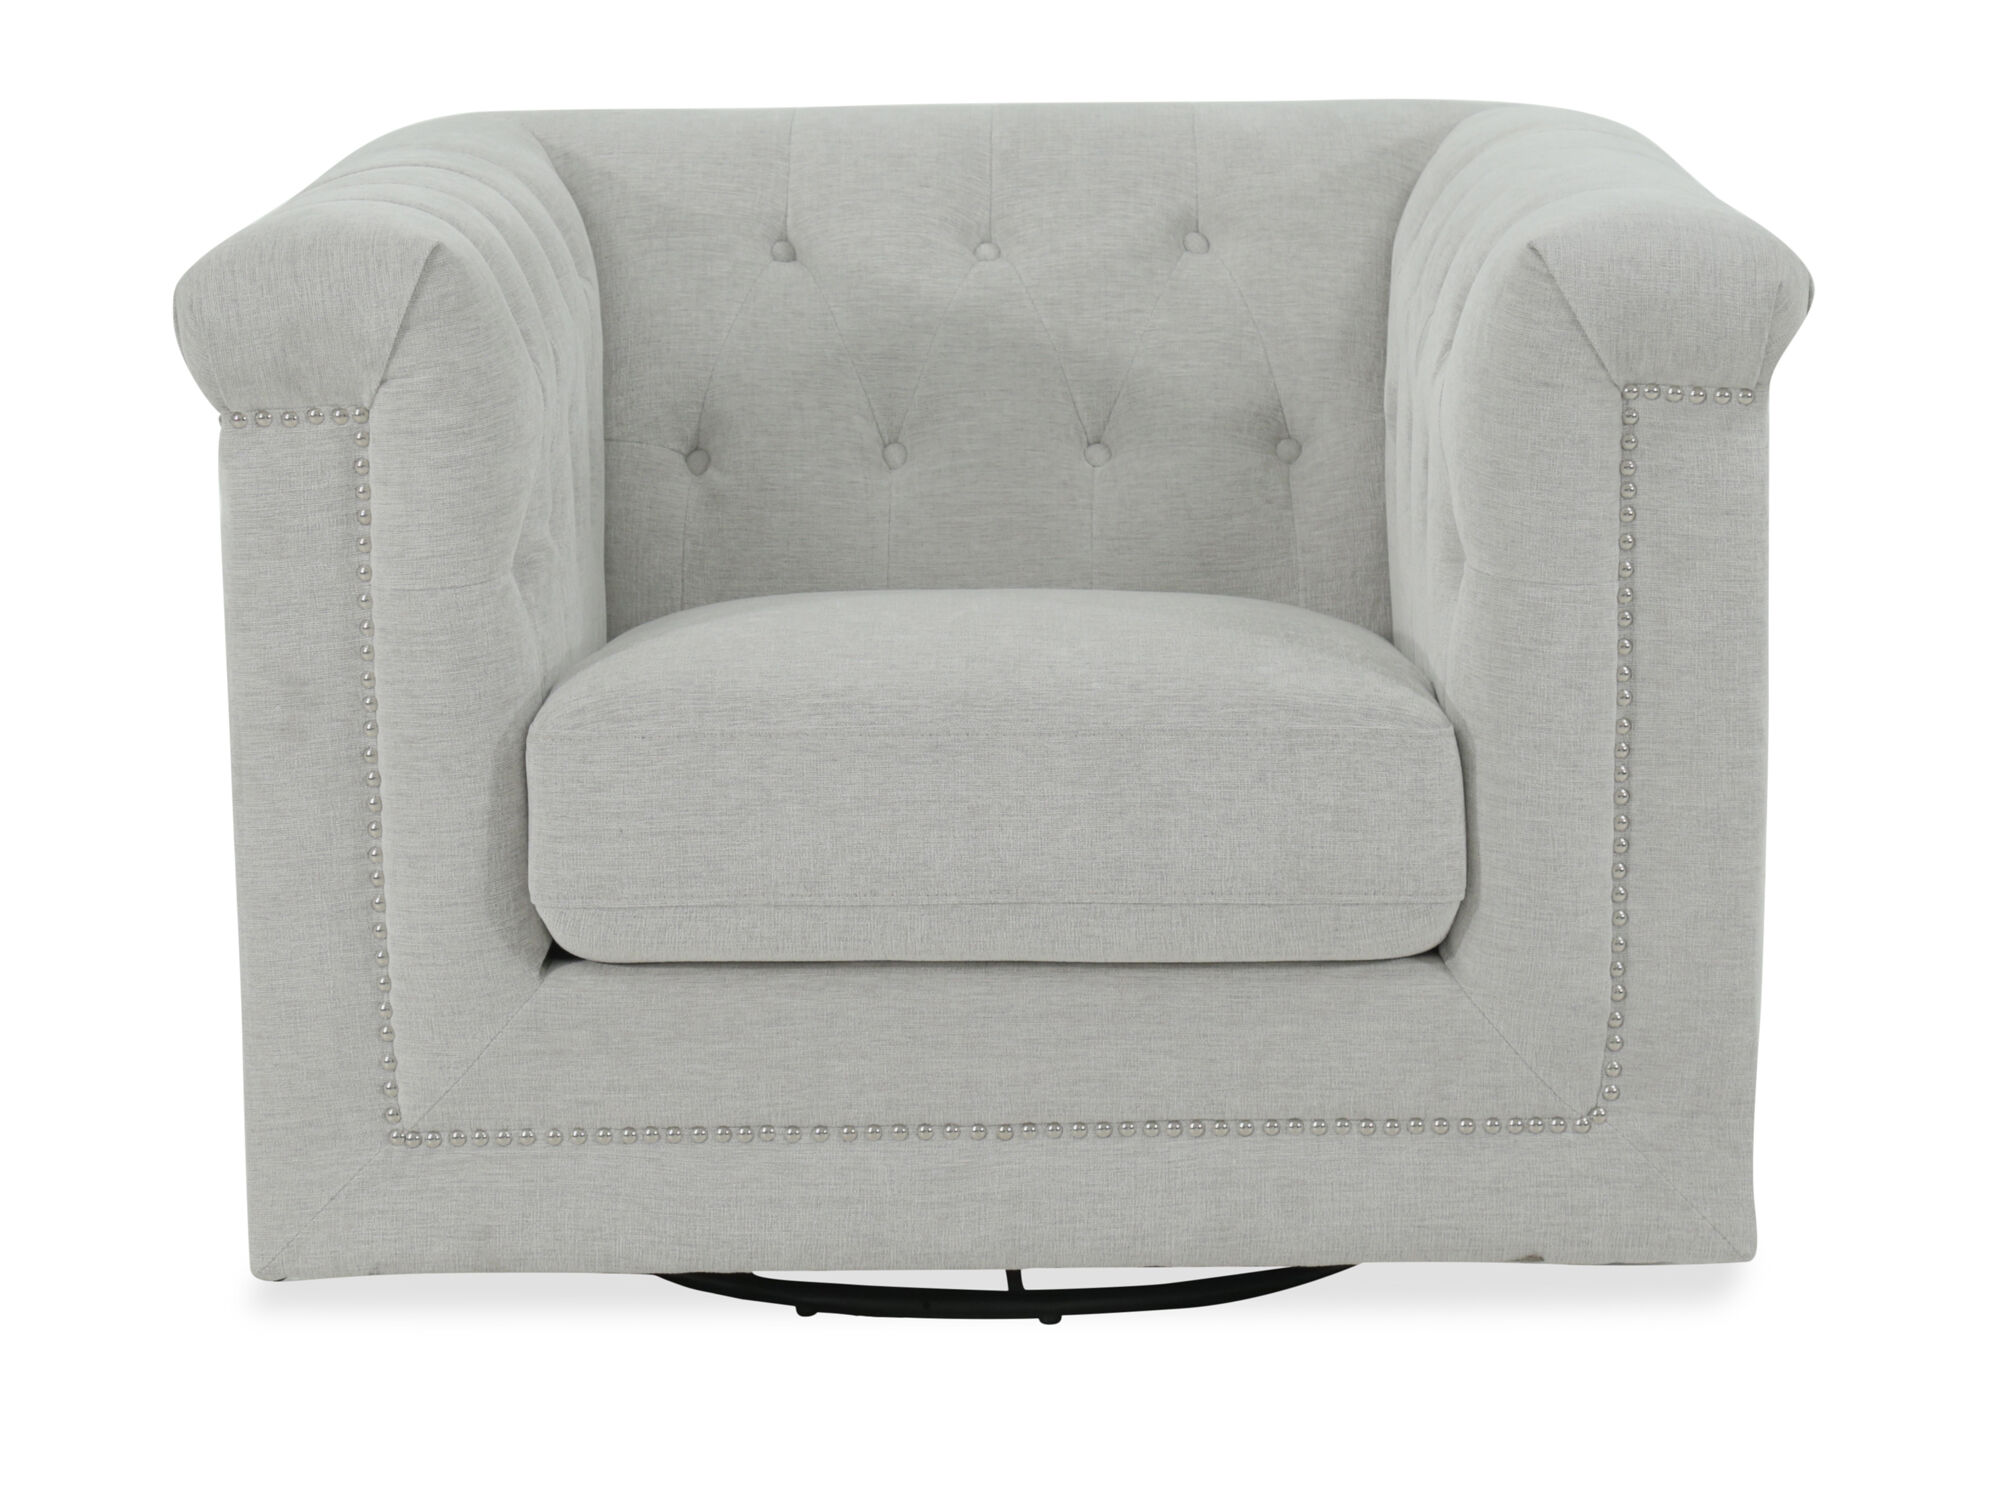 Delicieux Images Tufted Modern Swivel Chair In Beige ...